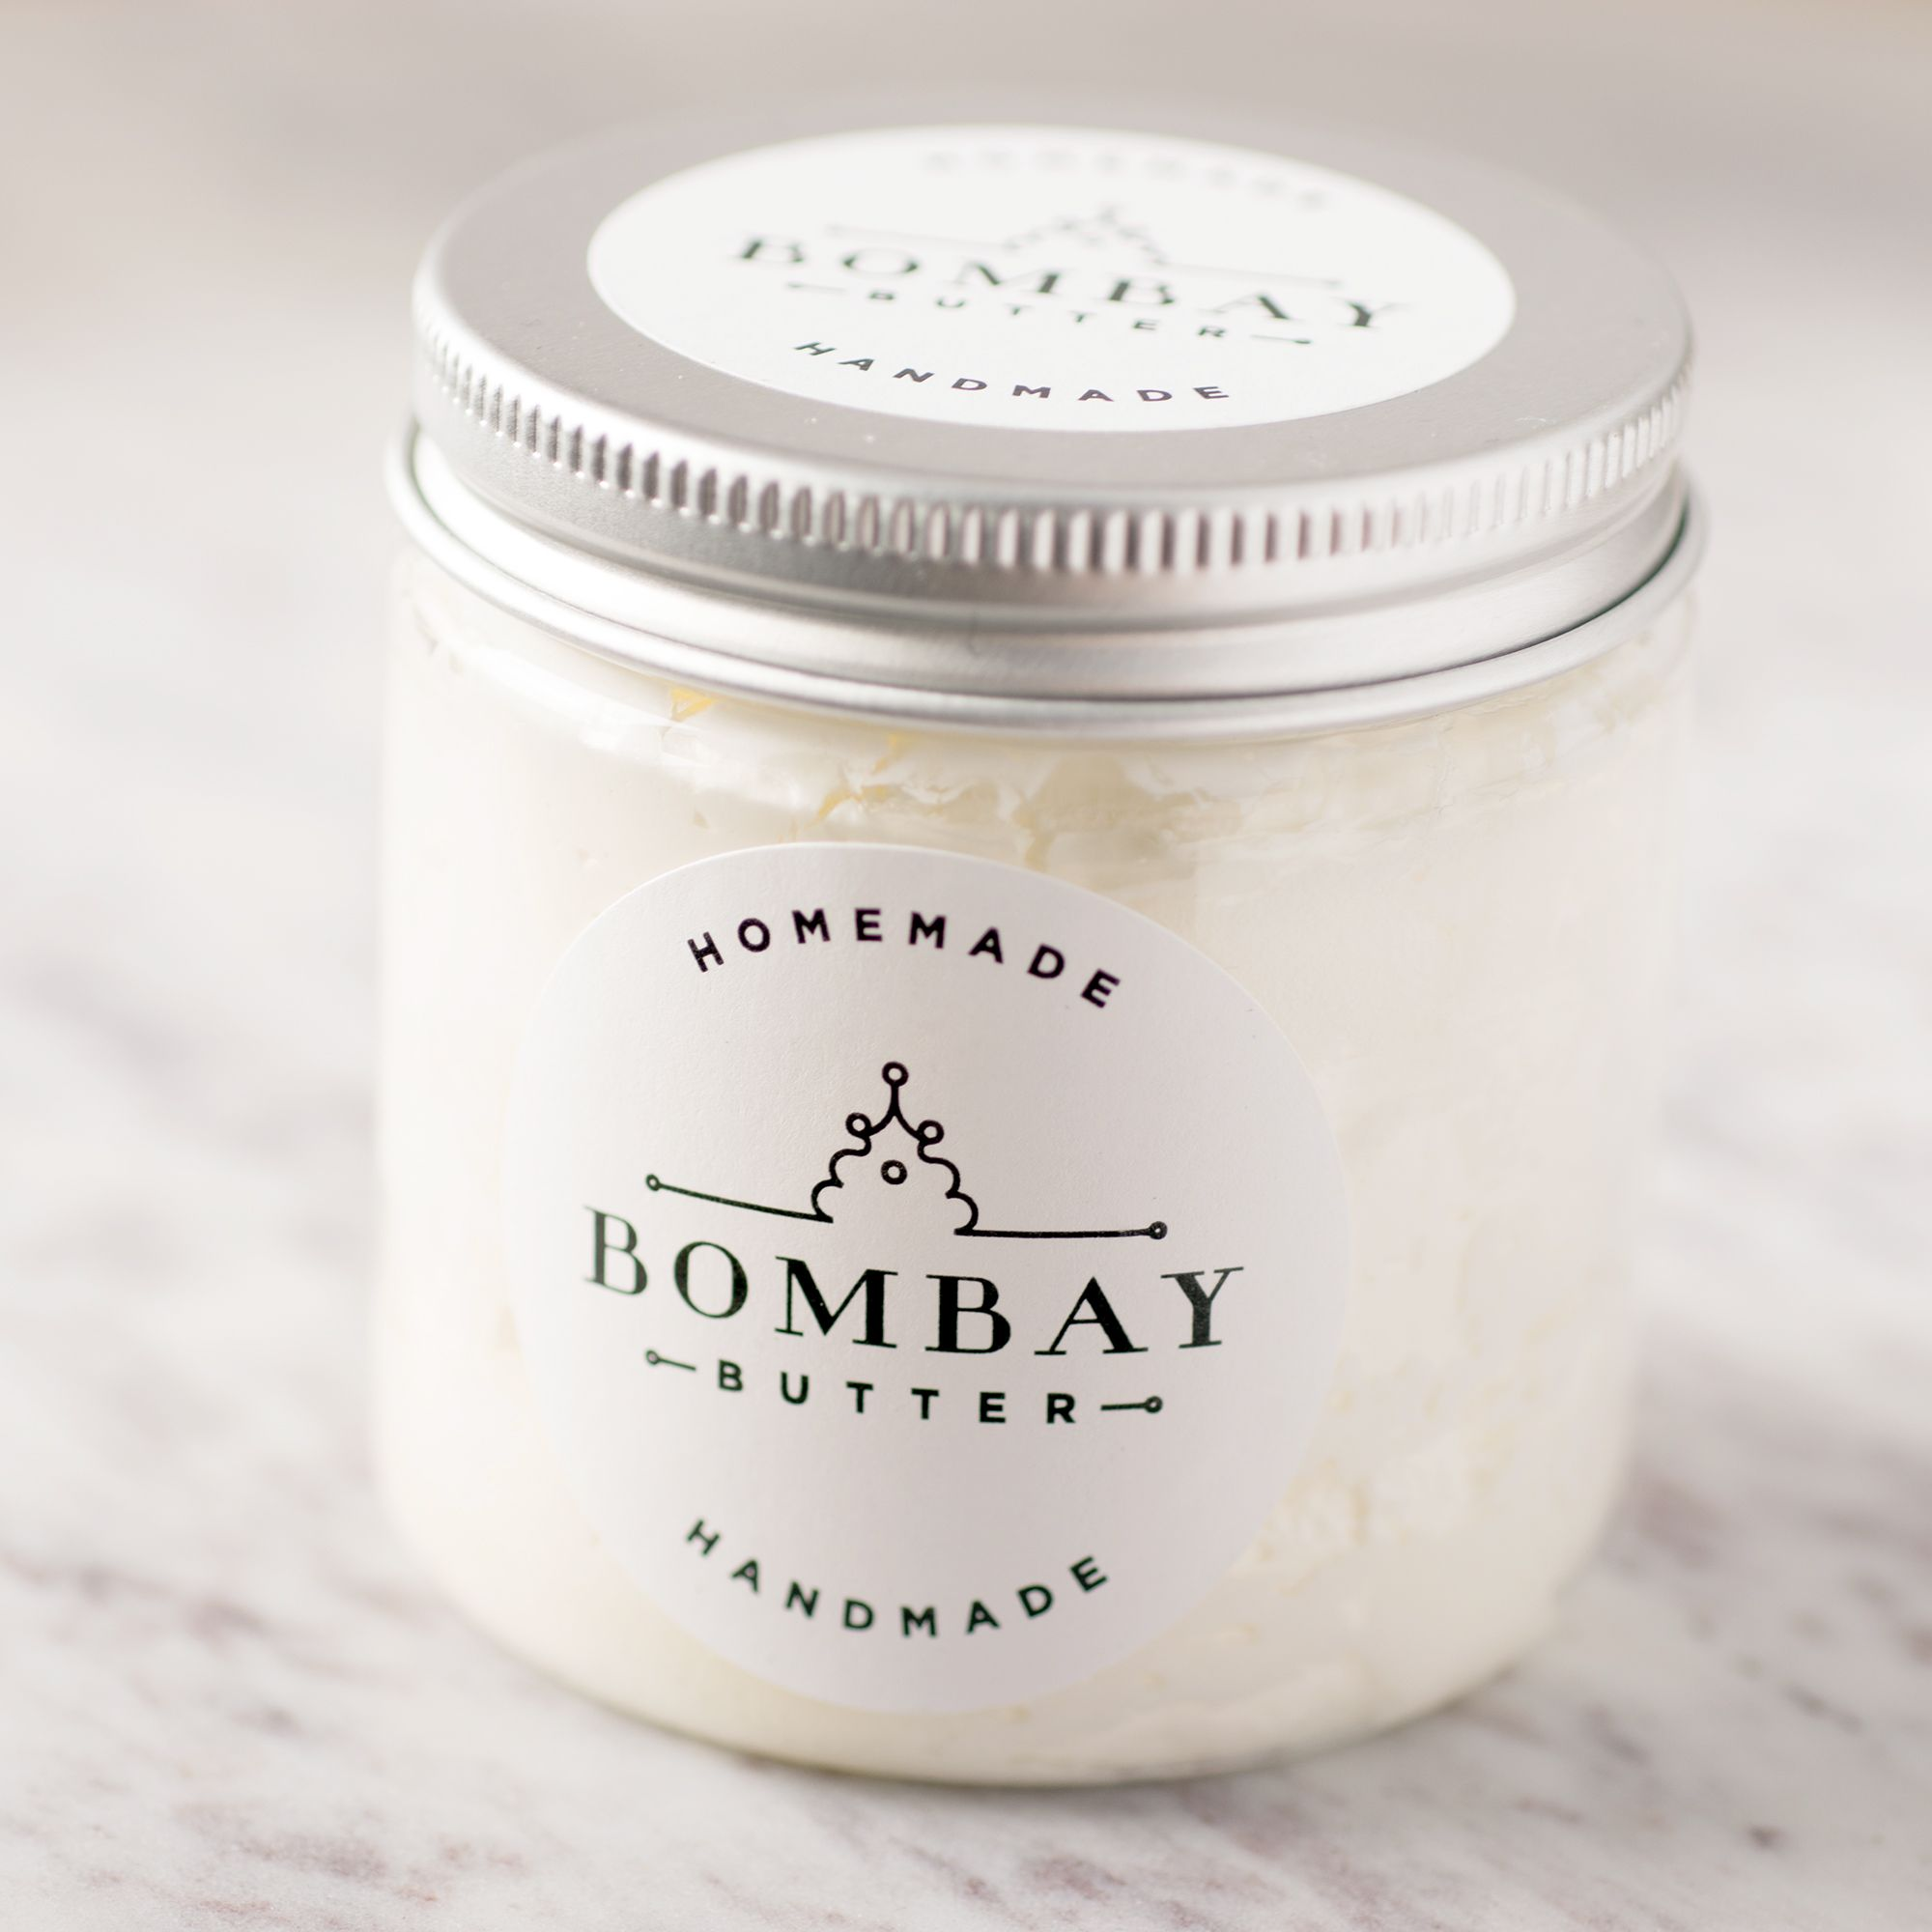 Bombay butters vegan body butter is made at home in small